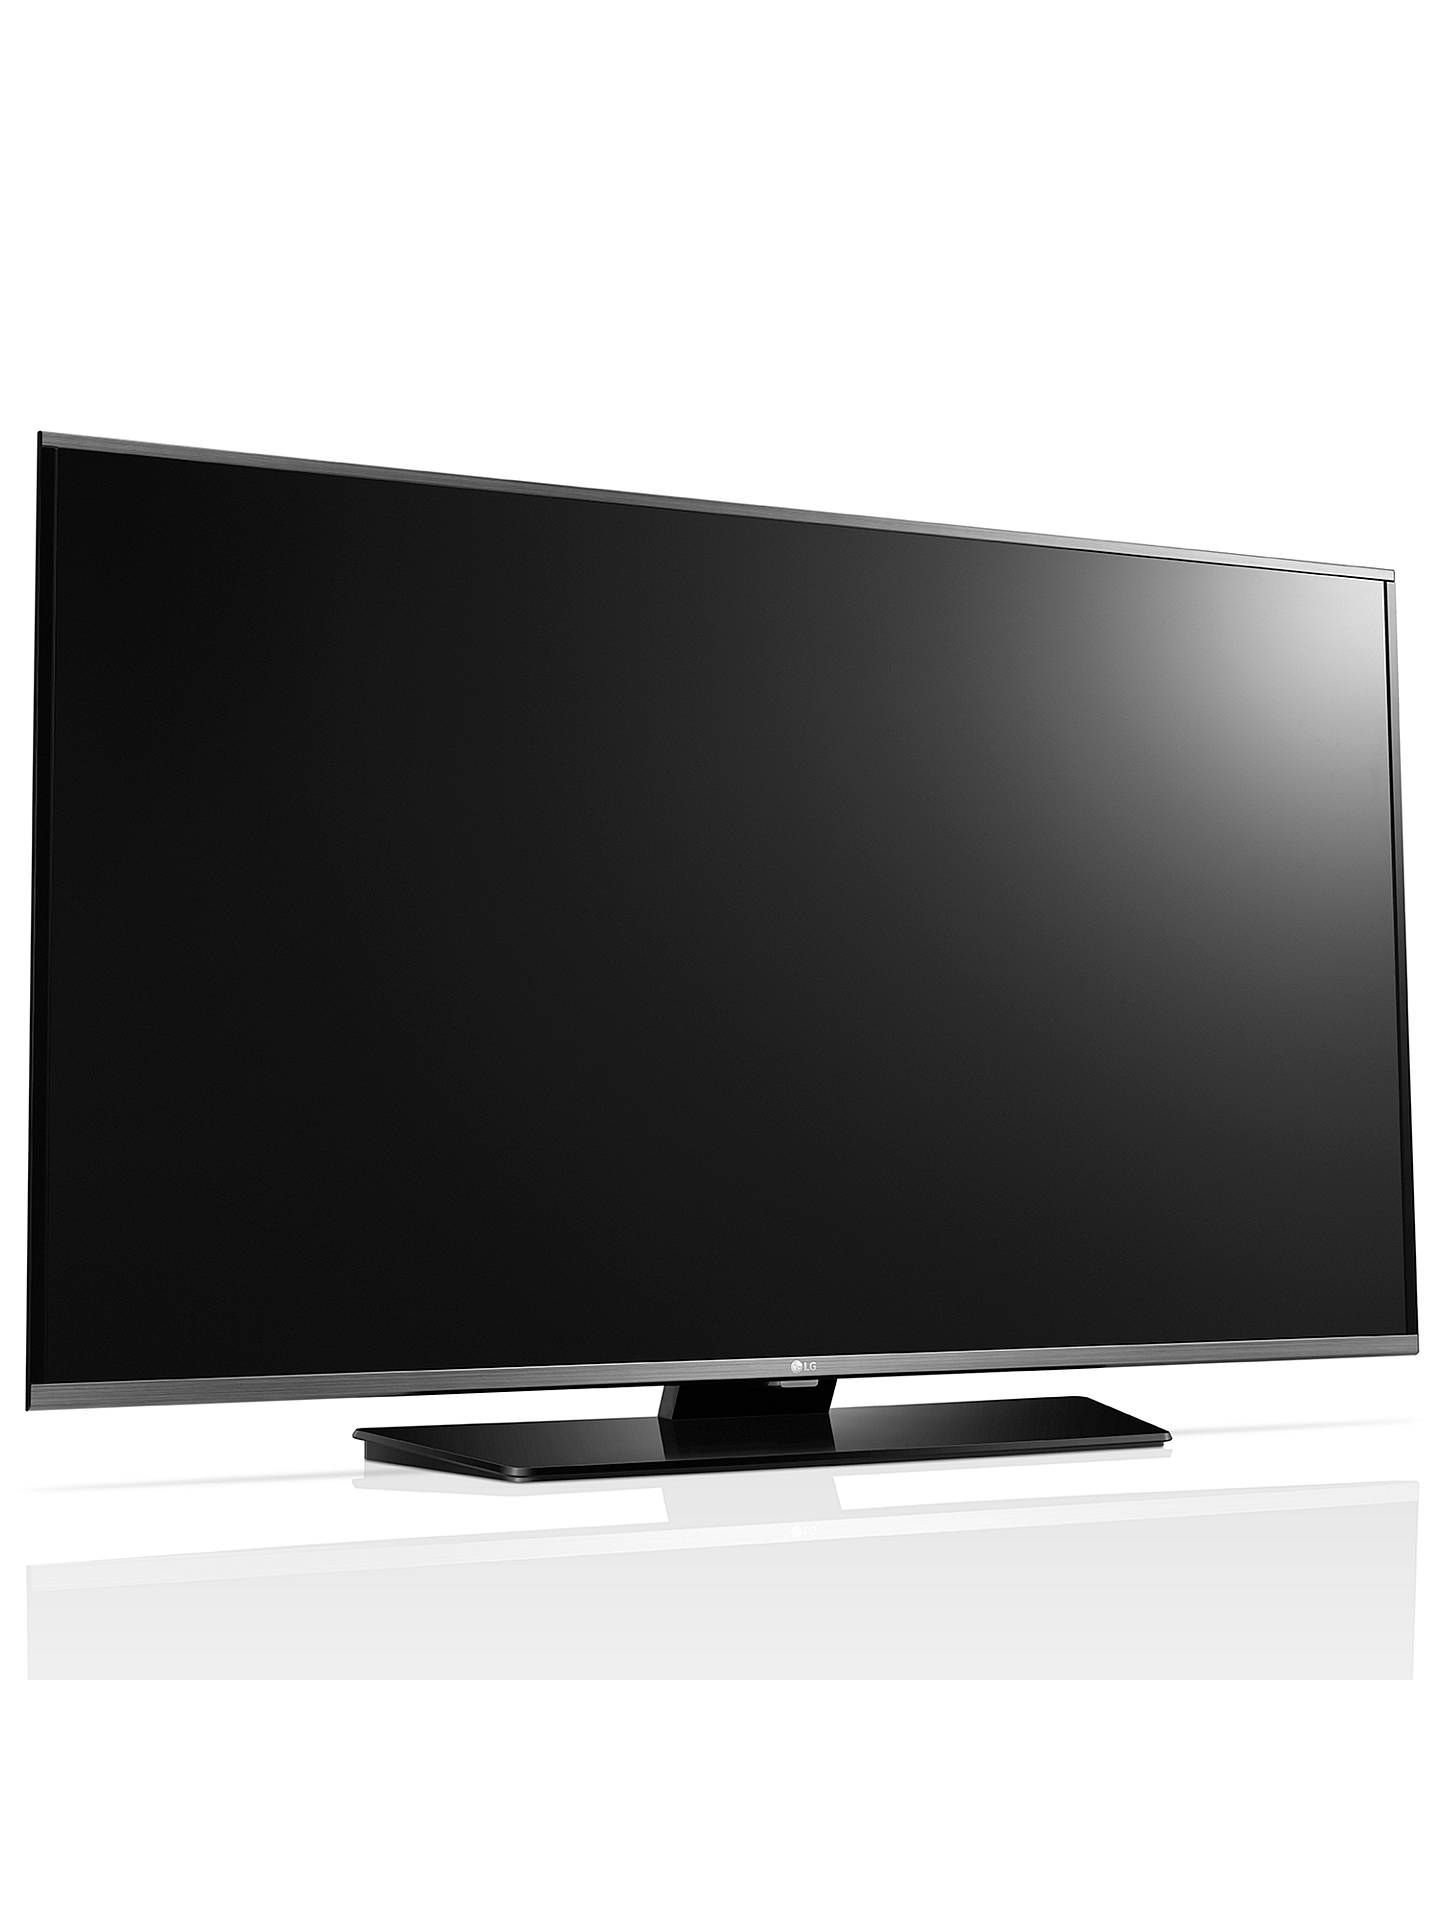 "Buy LG 43LF630V LED HD 1080p Smart TV, 43"" with Freeview HD and Built-In Wi-Fi Online at johnlewis.com"